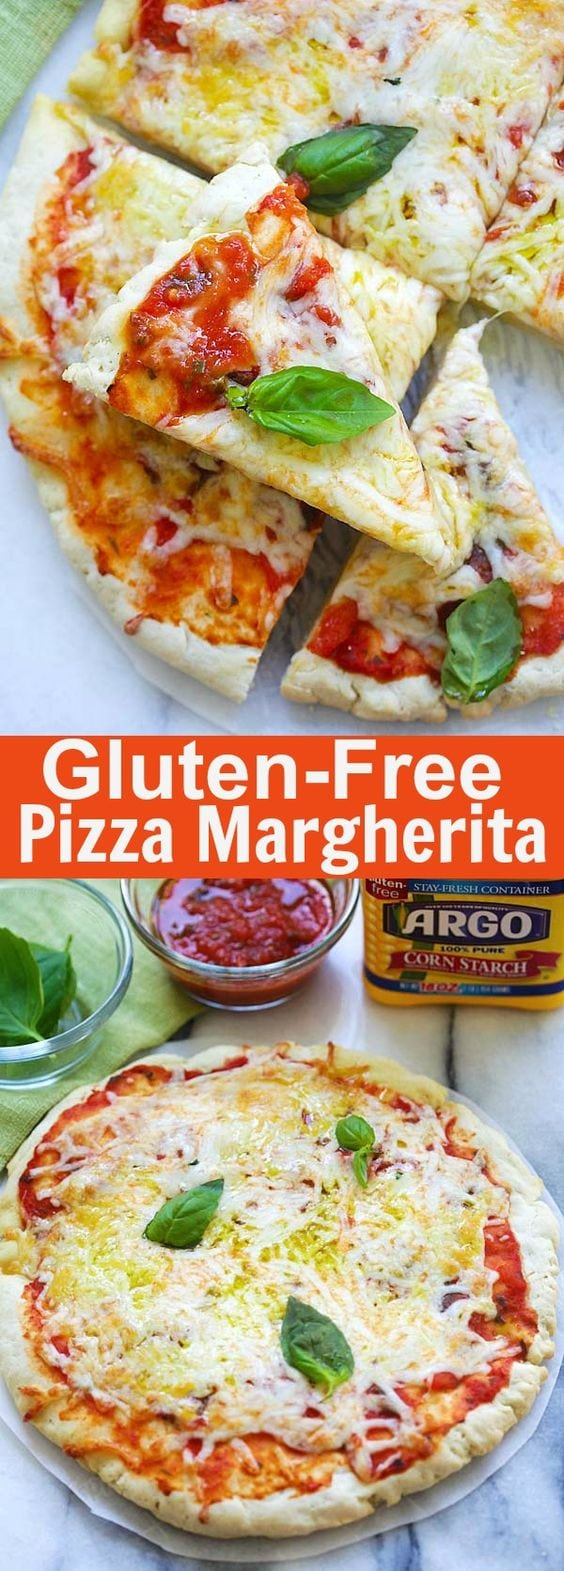 Gluten-Free Pizza Margherita - homemade pizza Margherita with gluten-free crust. Made with Argo® Corn Starch, this pizza is so delicious   rasamalaysia.com